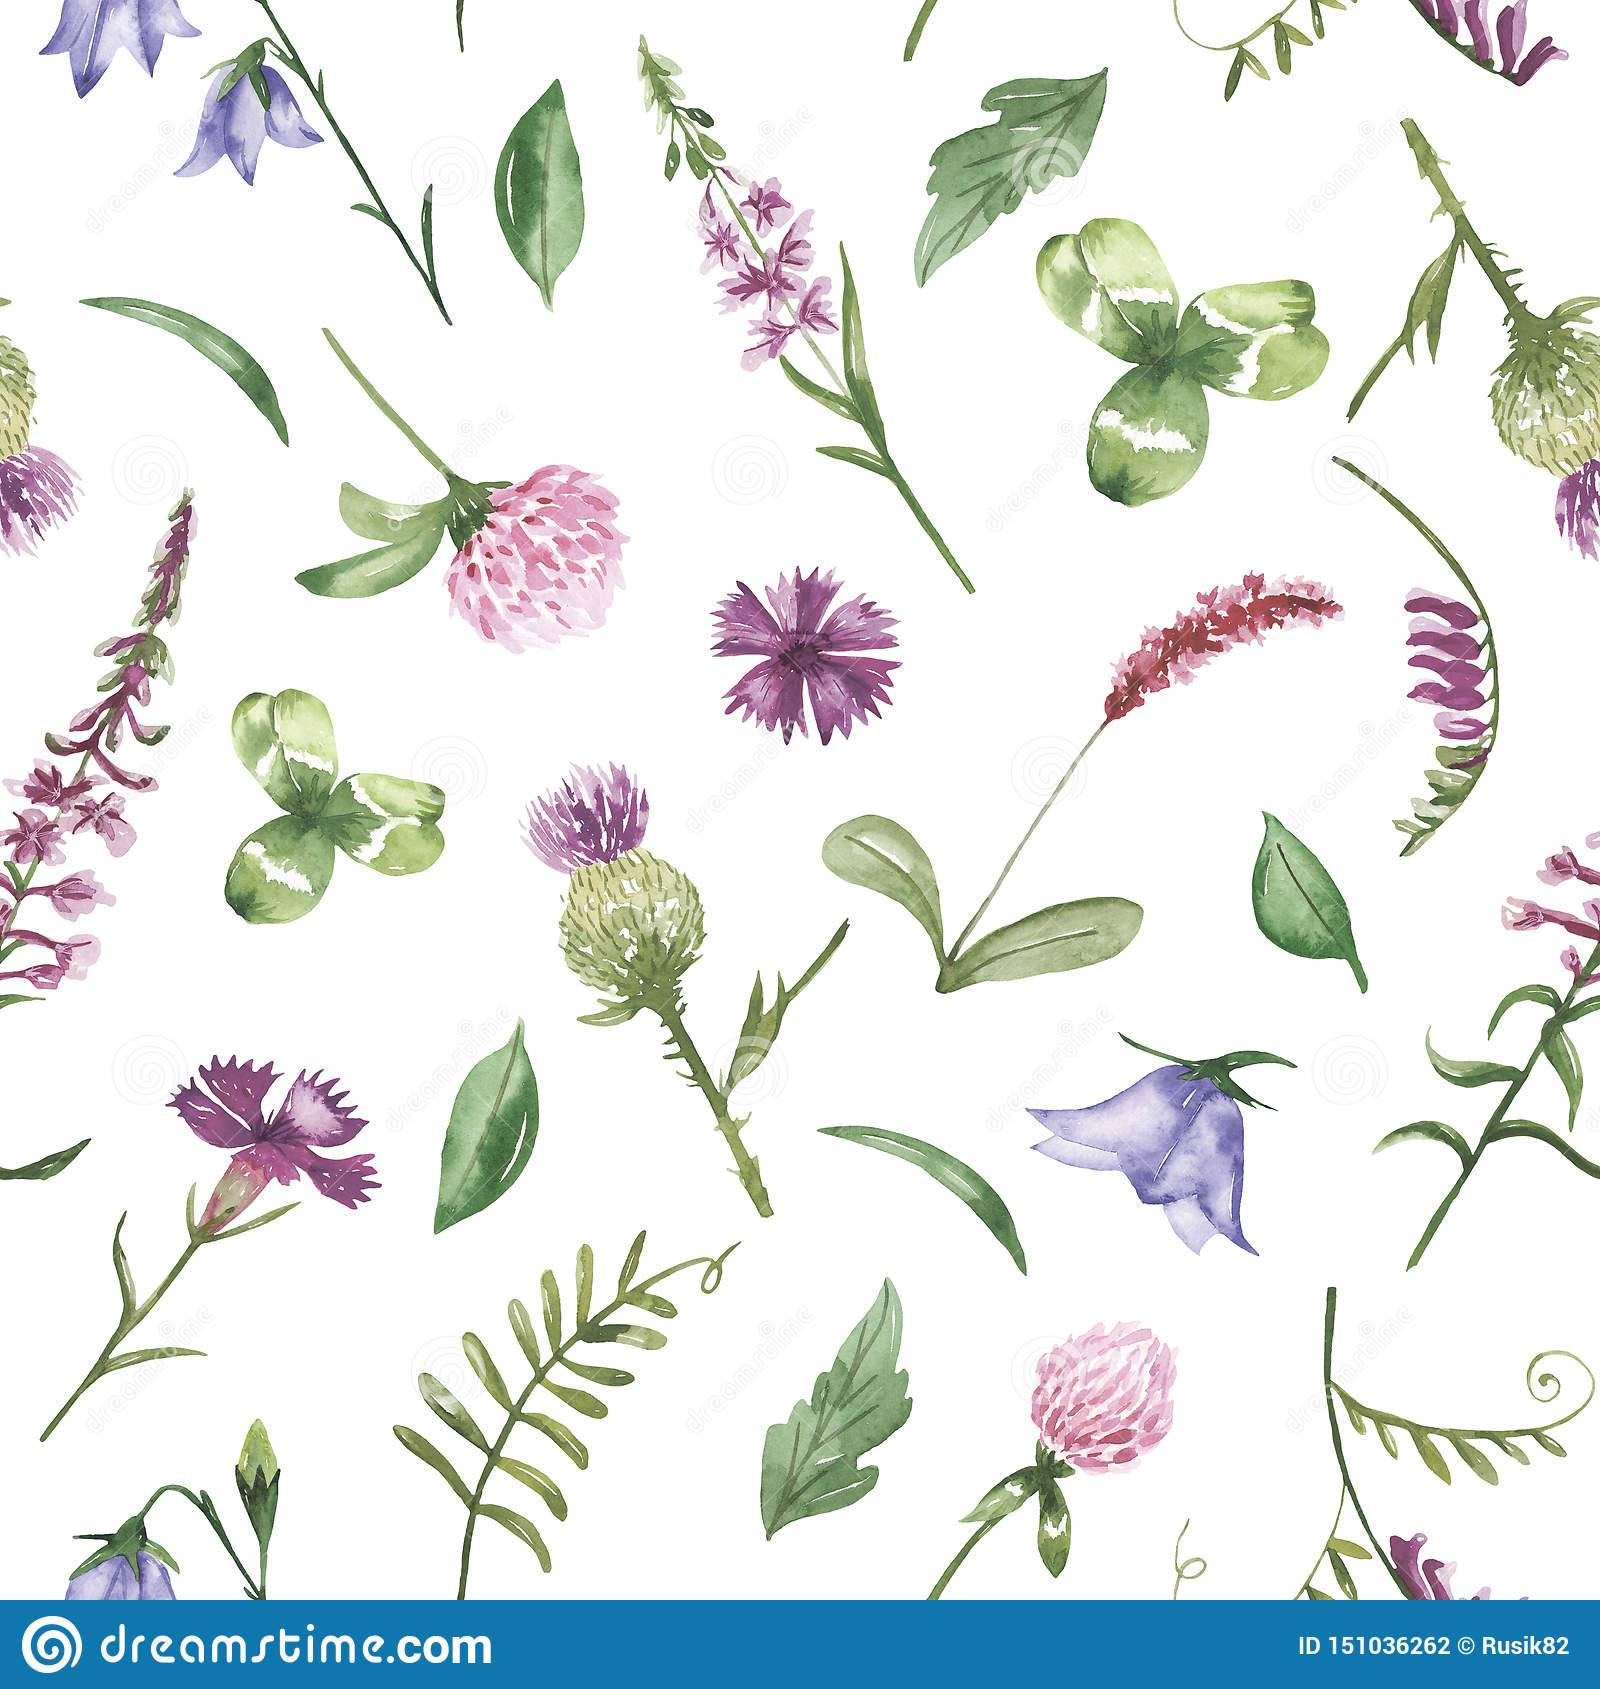 Watercolor seamless pattern with purple wild flowers.